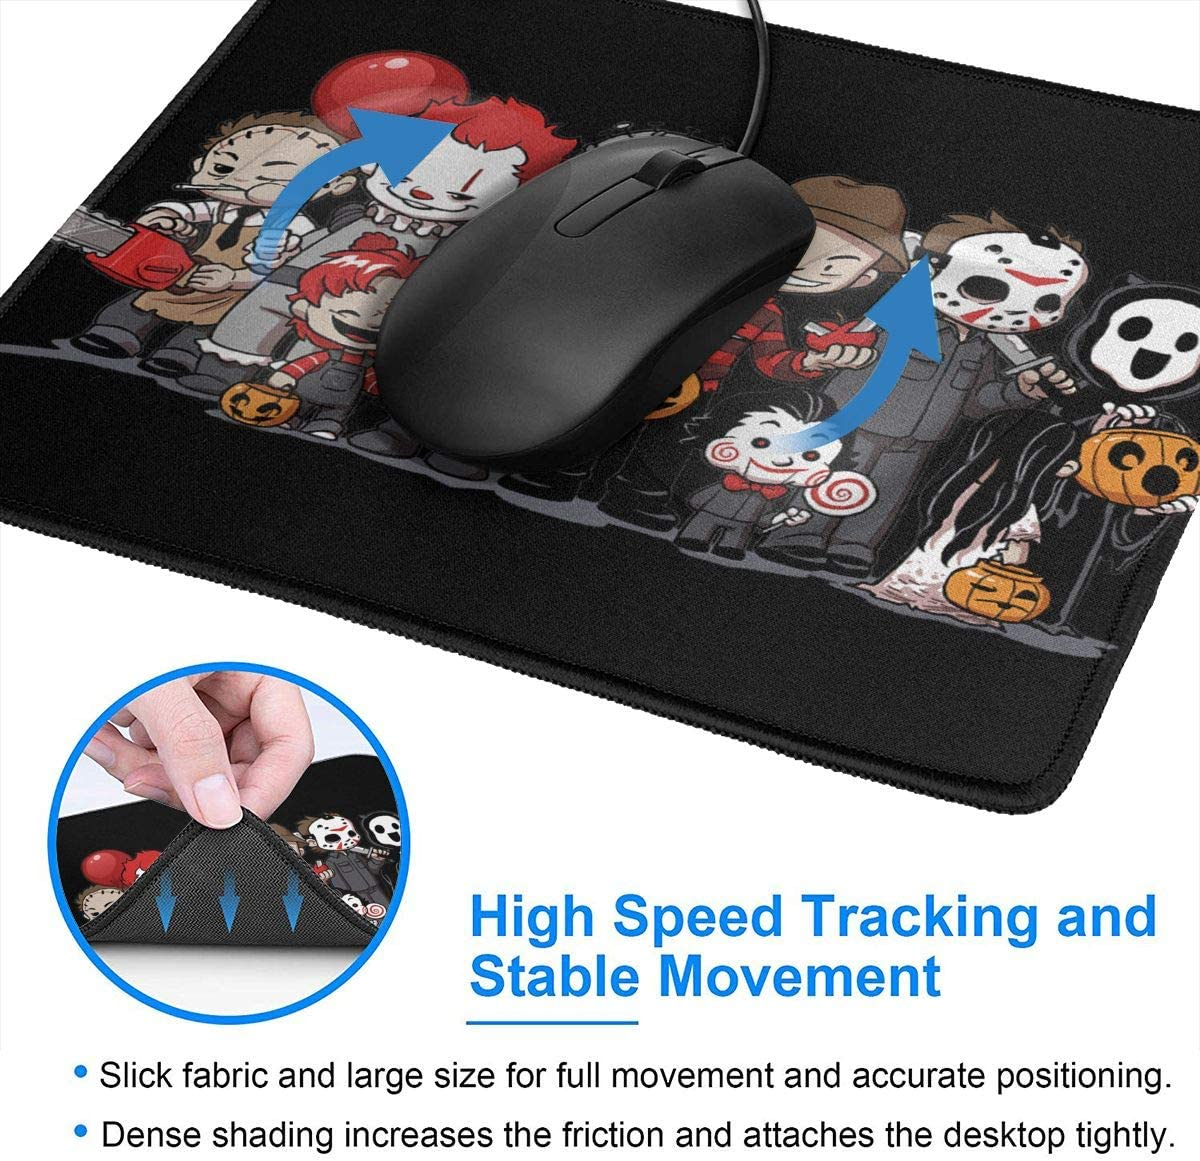 Anime EVA Evangelion Asuka Mouse Pad Non-Slip Gaming Mouse Pad with Stitched Edge Computer PC Mousepad Neoprene Base for Office Home